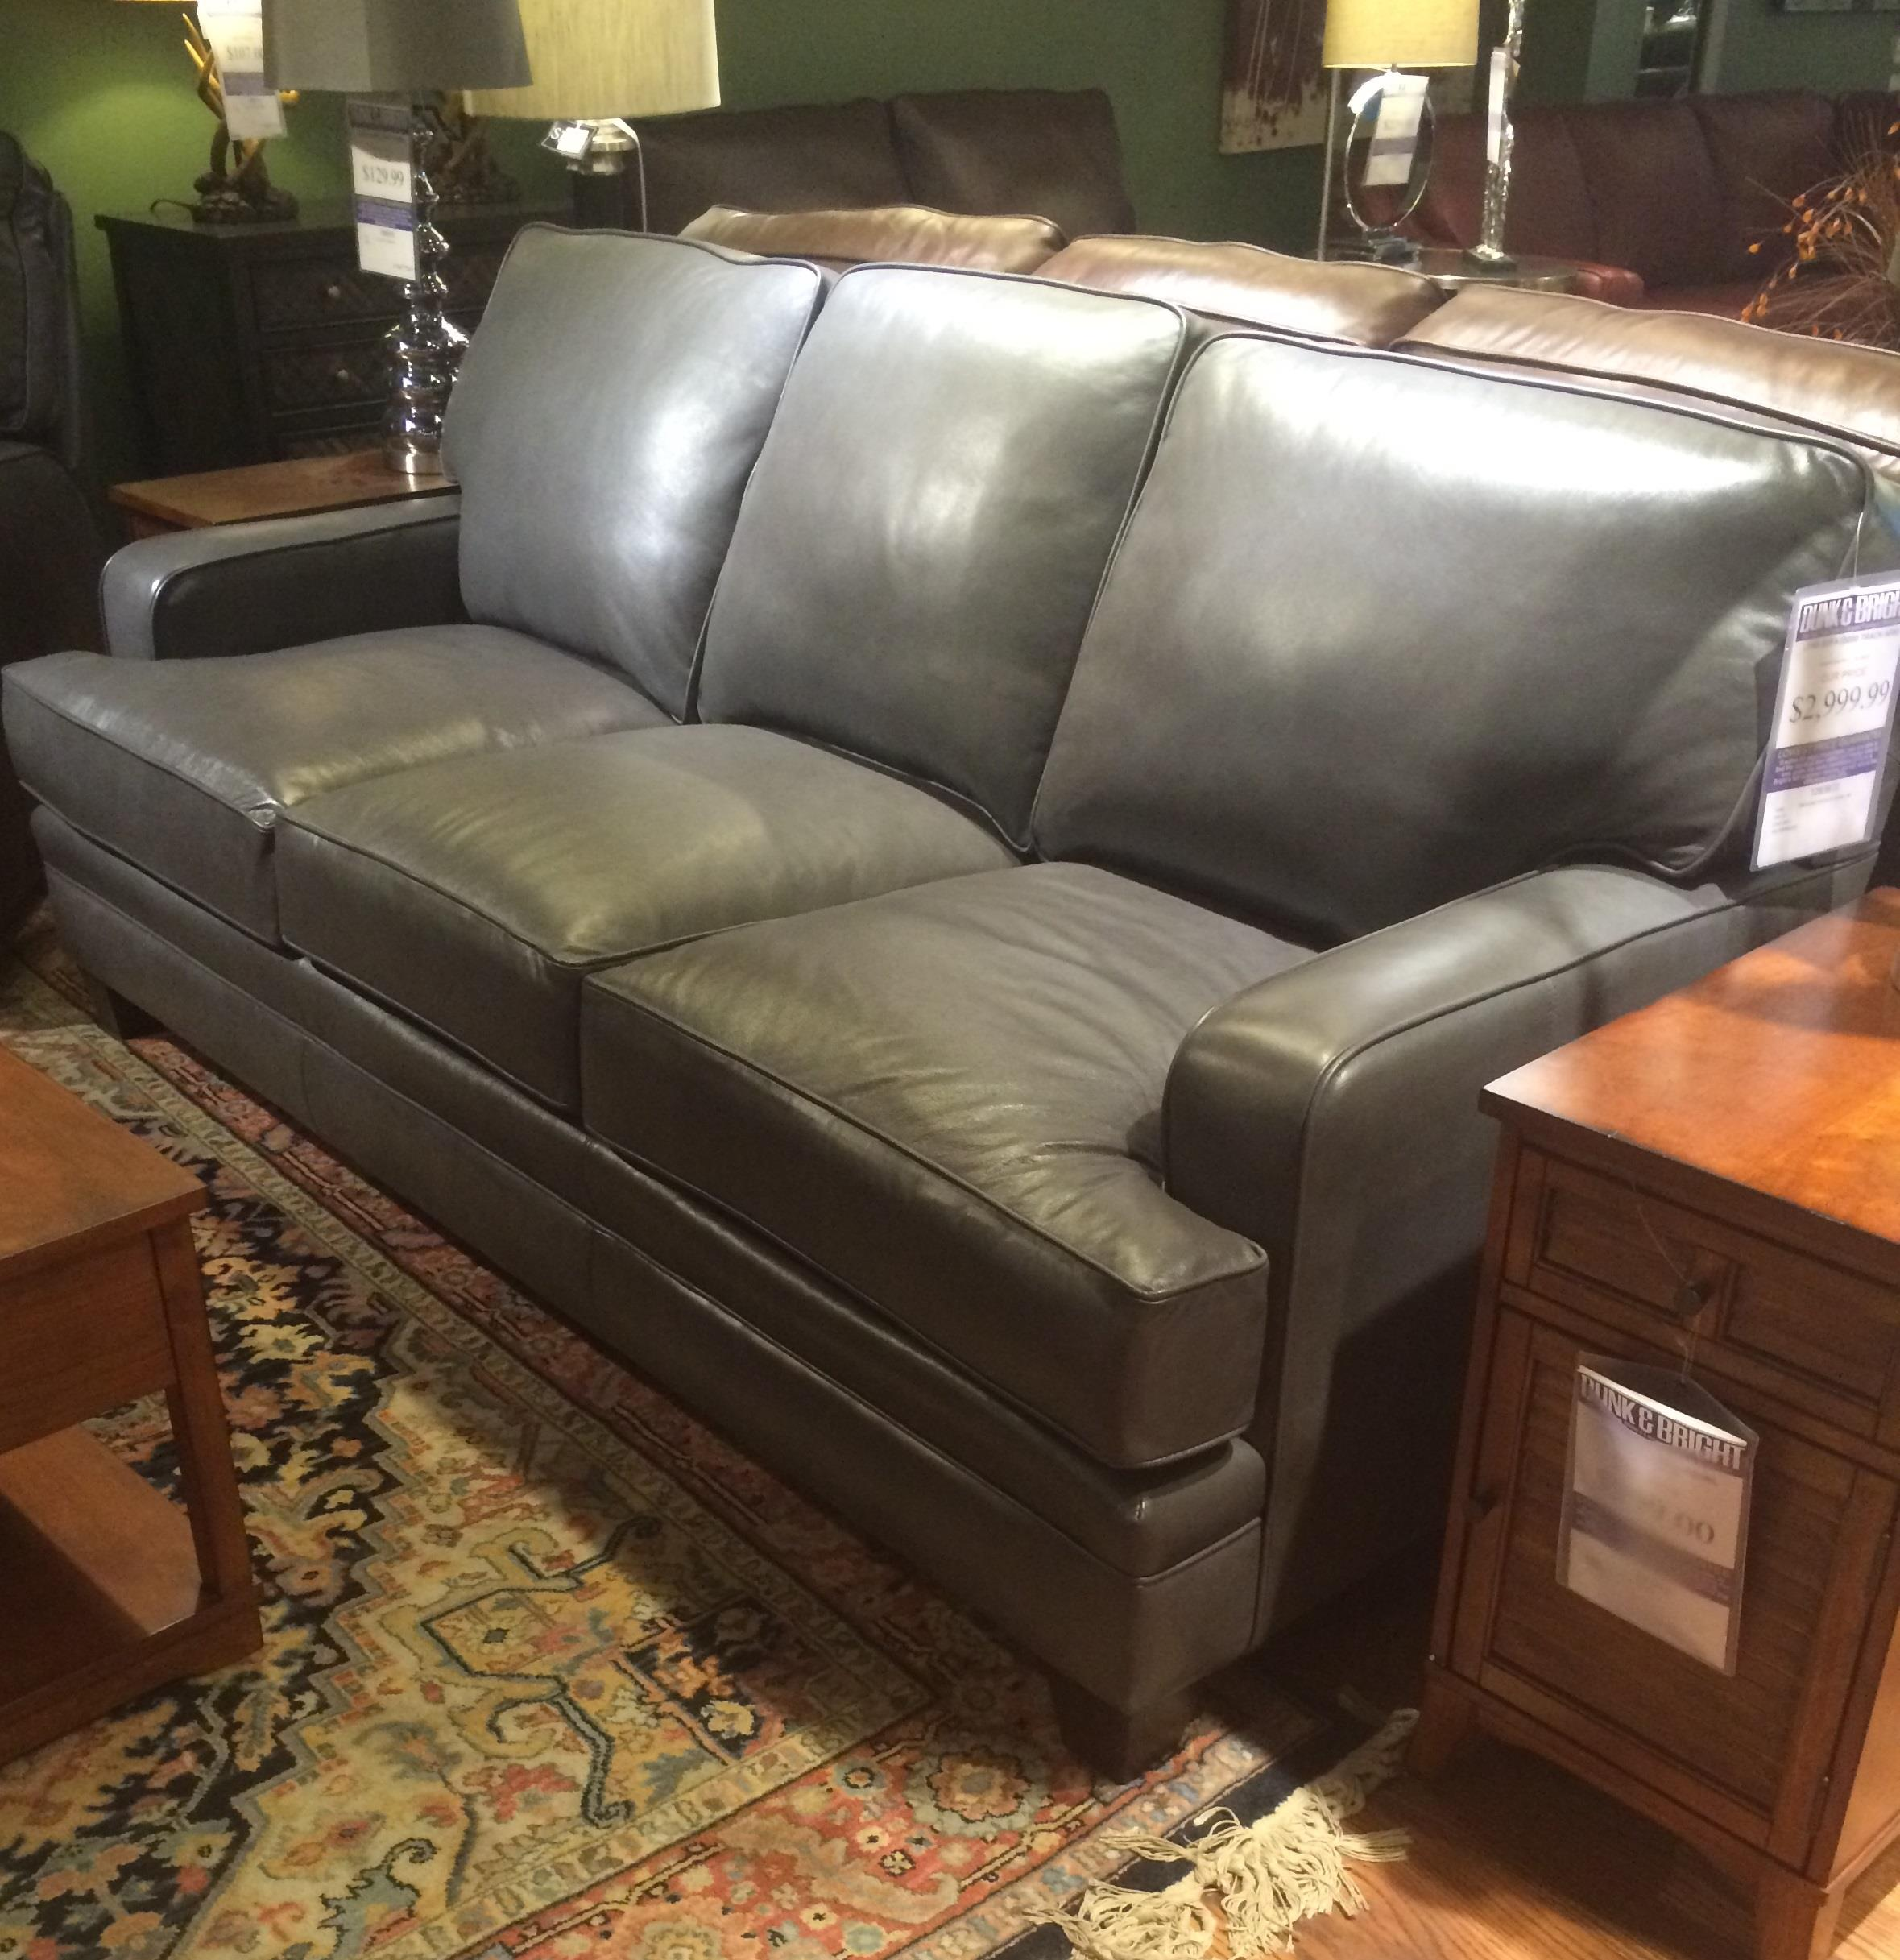 Smith Brothers Build Your Own 5000 Series Leather Sofa Dunk Bright Furniture Sofa